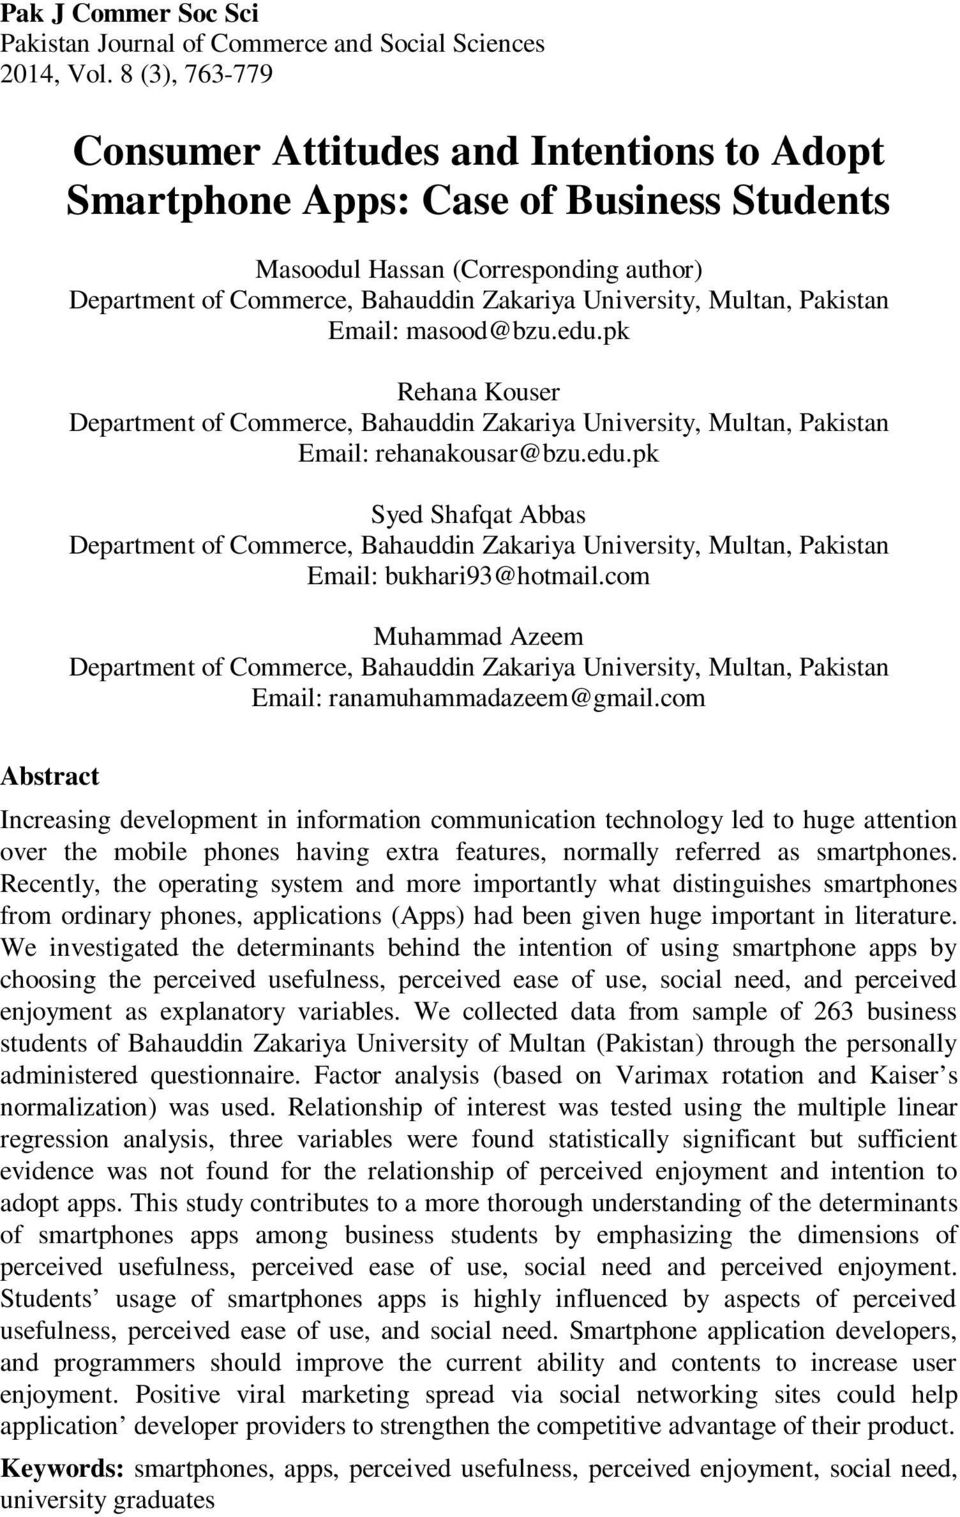 Multan, Pakistan Email: masood@bzu.edu.pk Rehana Kouser Department of Commerce, Bahauddin Zakariya University, Multan, Pakistan Email: rehanakousar@bzu.edu.pk Syed Shafqat Abbas Department of Commerce, Bahauddin Zakariya University, Multan, Pakistan Email: bukhari93@hotmail.